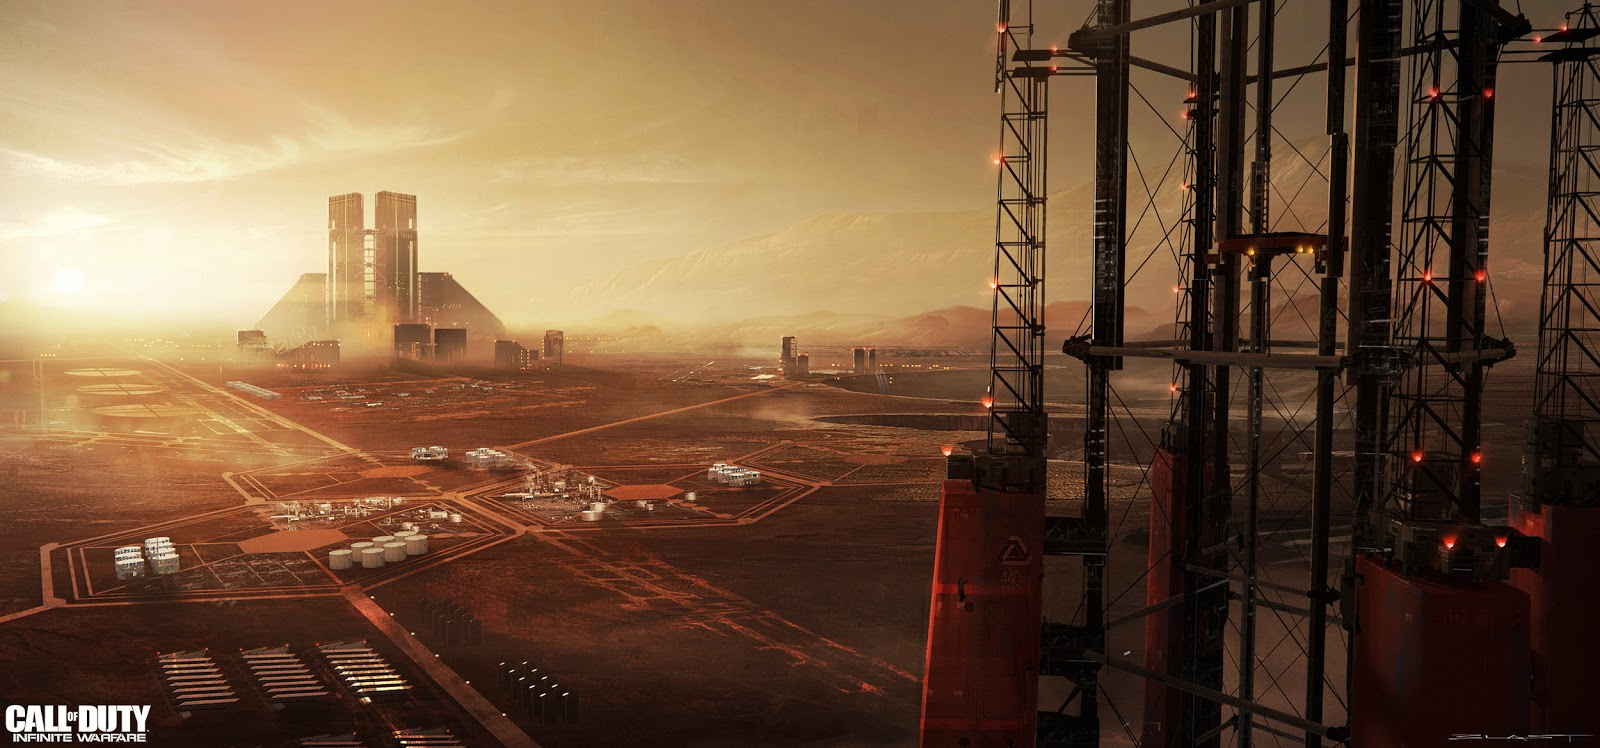 Industrial Mars by Benjamin Last - concept art for Call of Duty Infinite Warfare